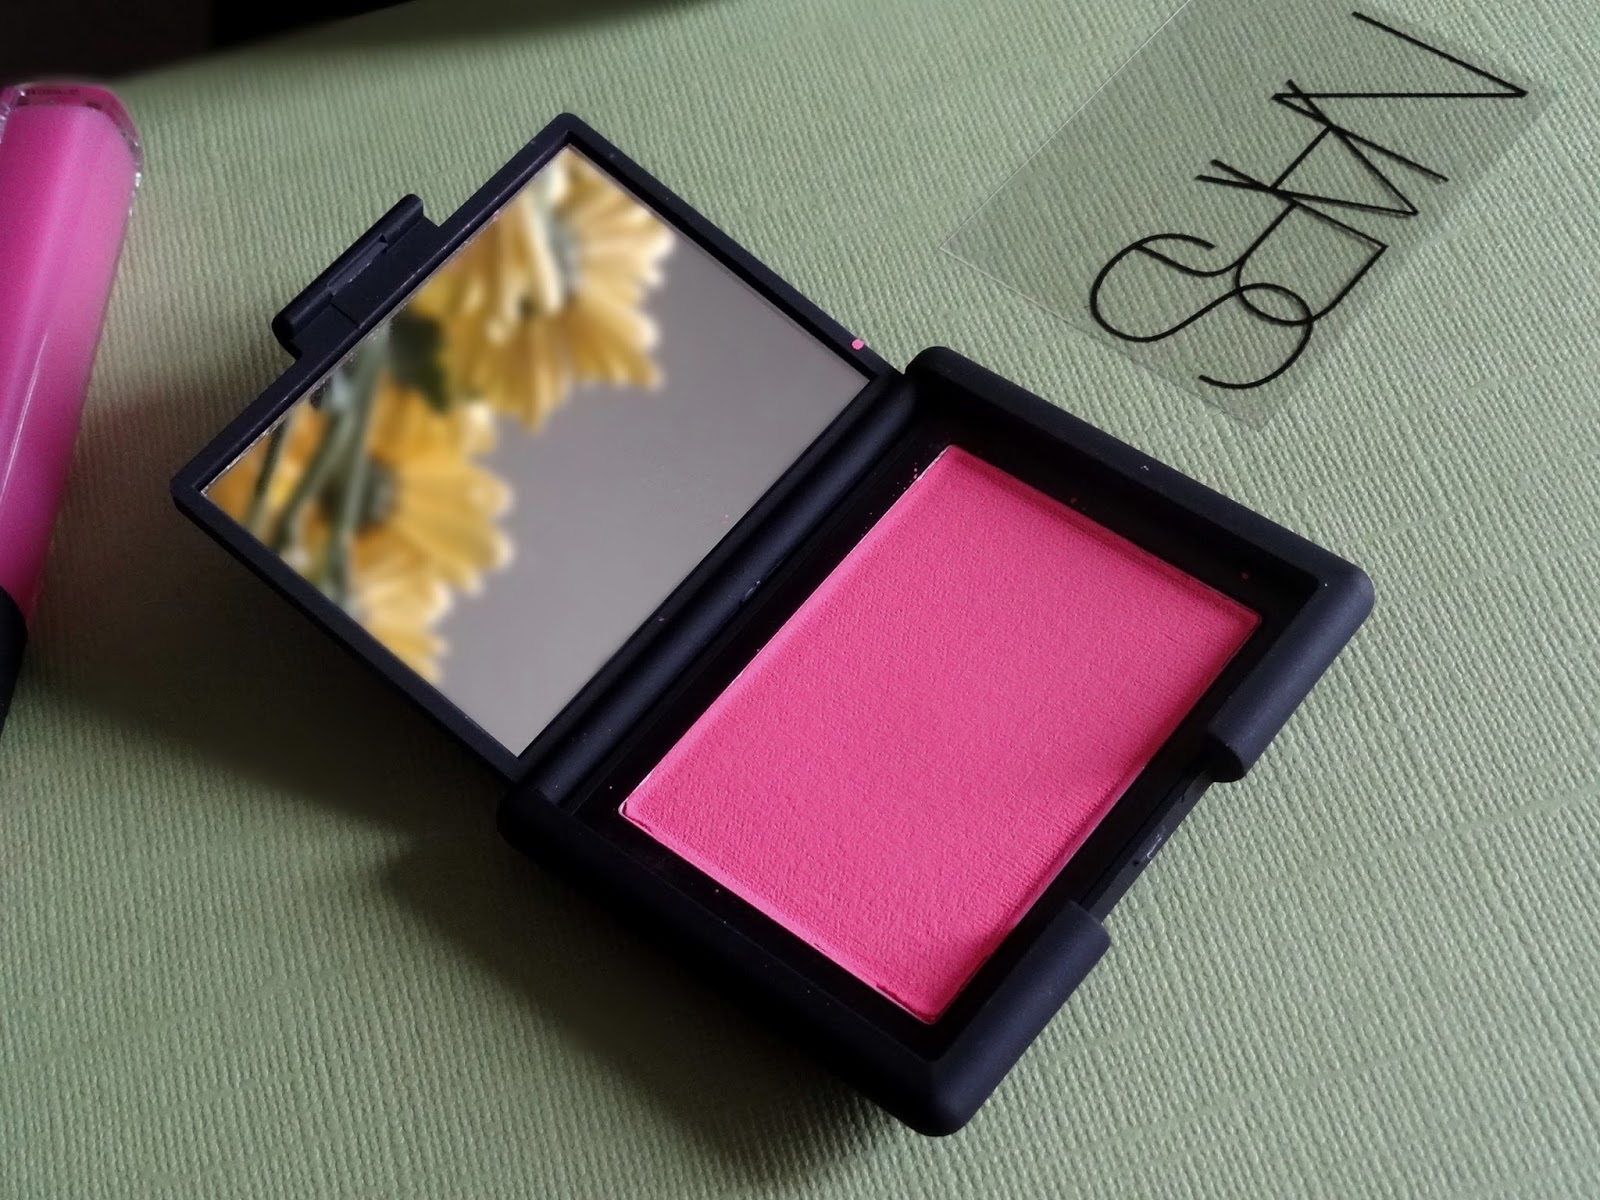 Christopher Kane For NARS Summer 2015 Collection | Glow Pink Lip Gloss & Starscape Blush